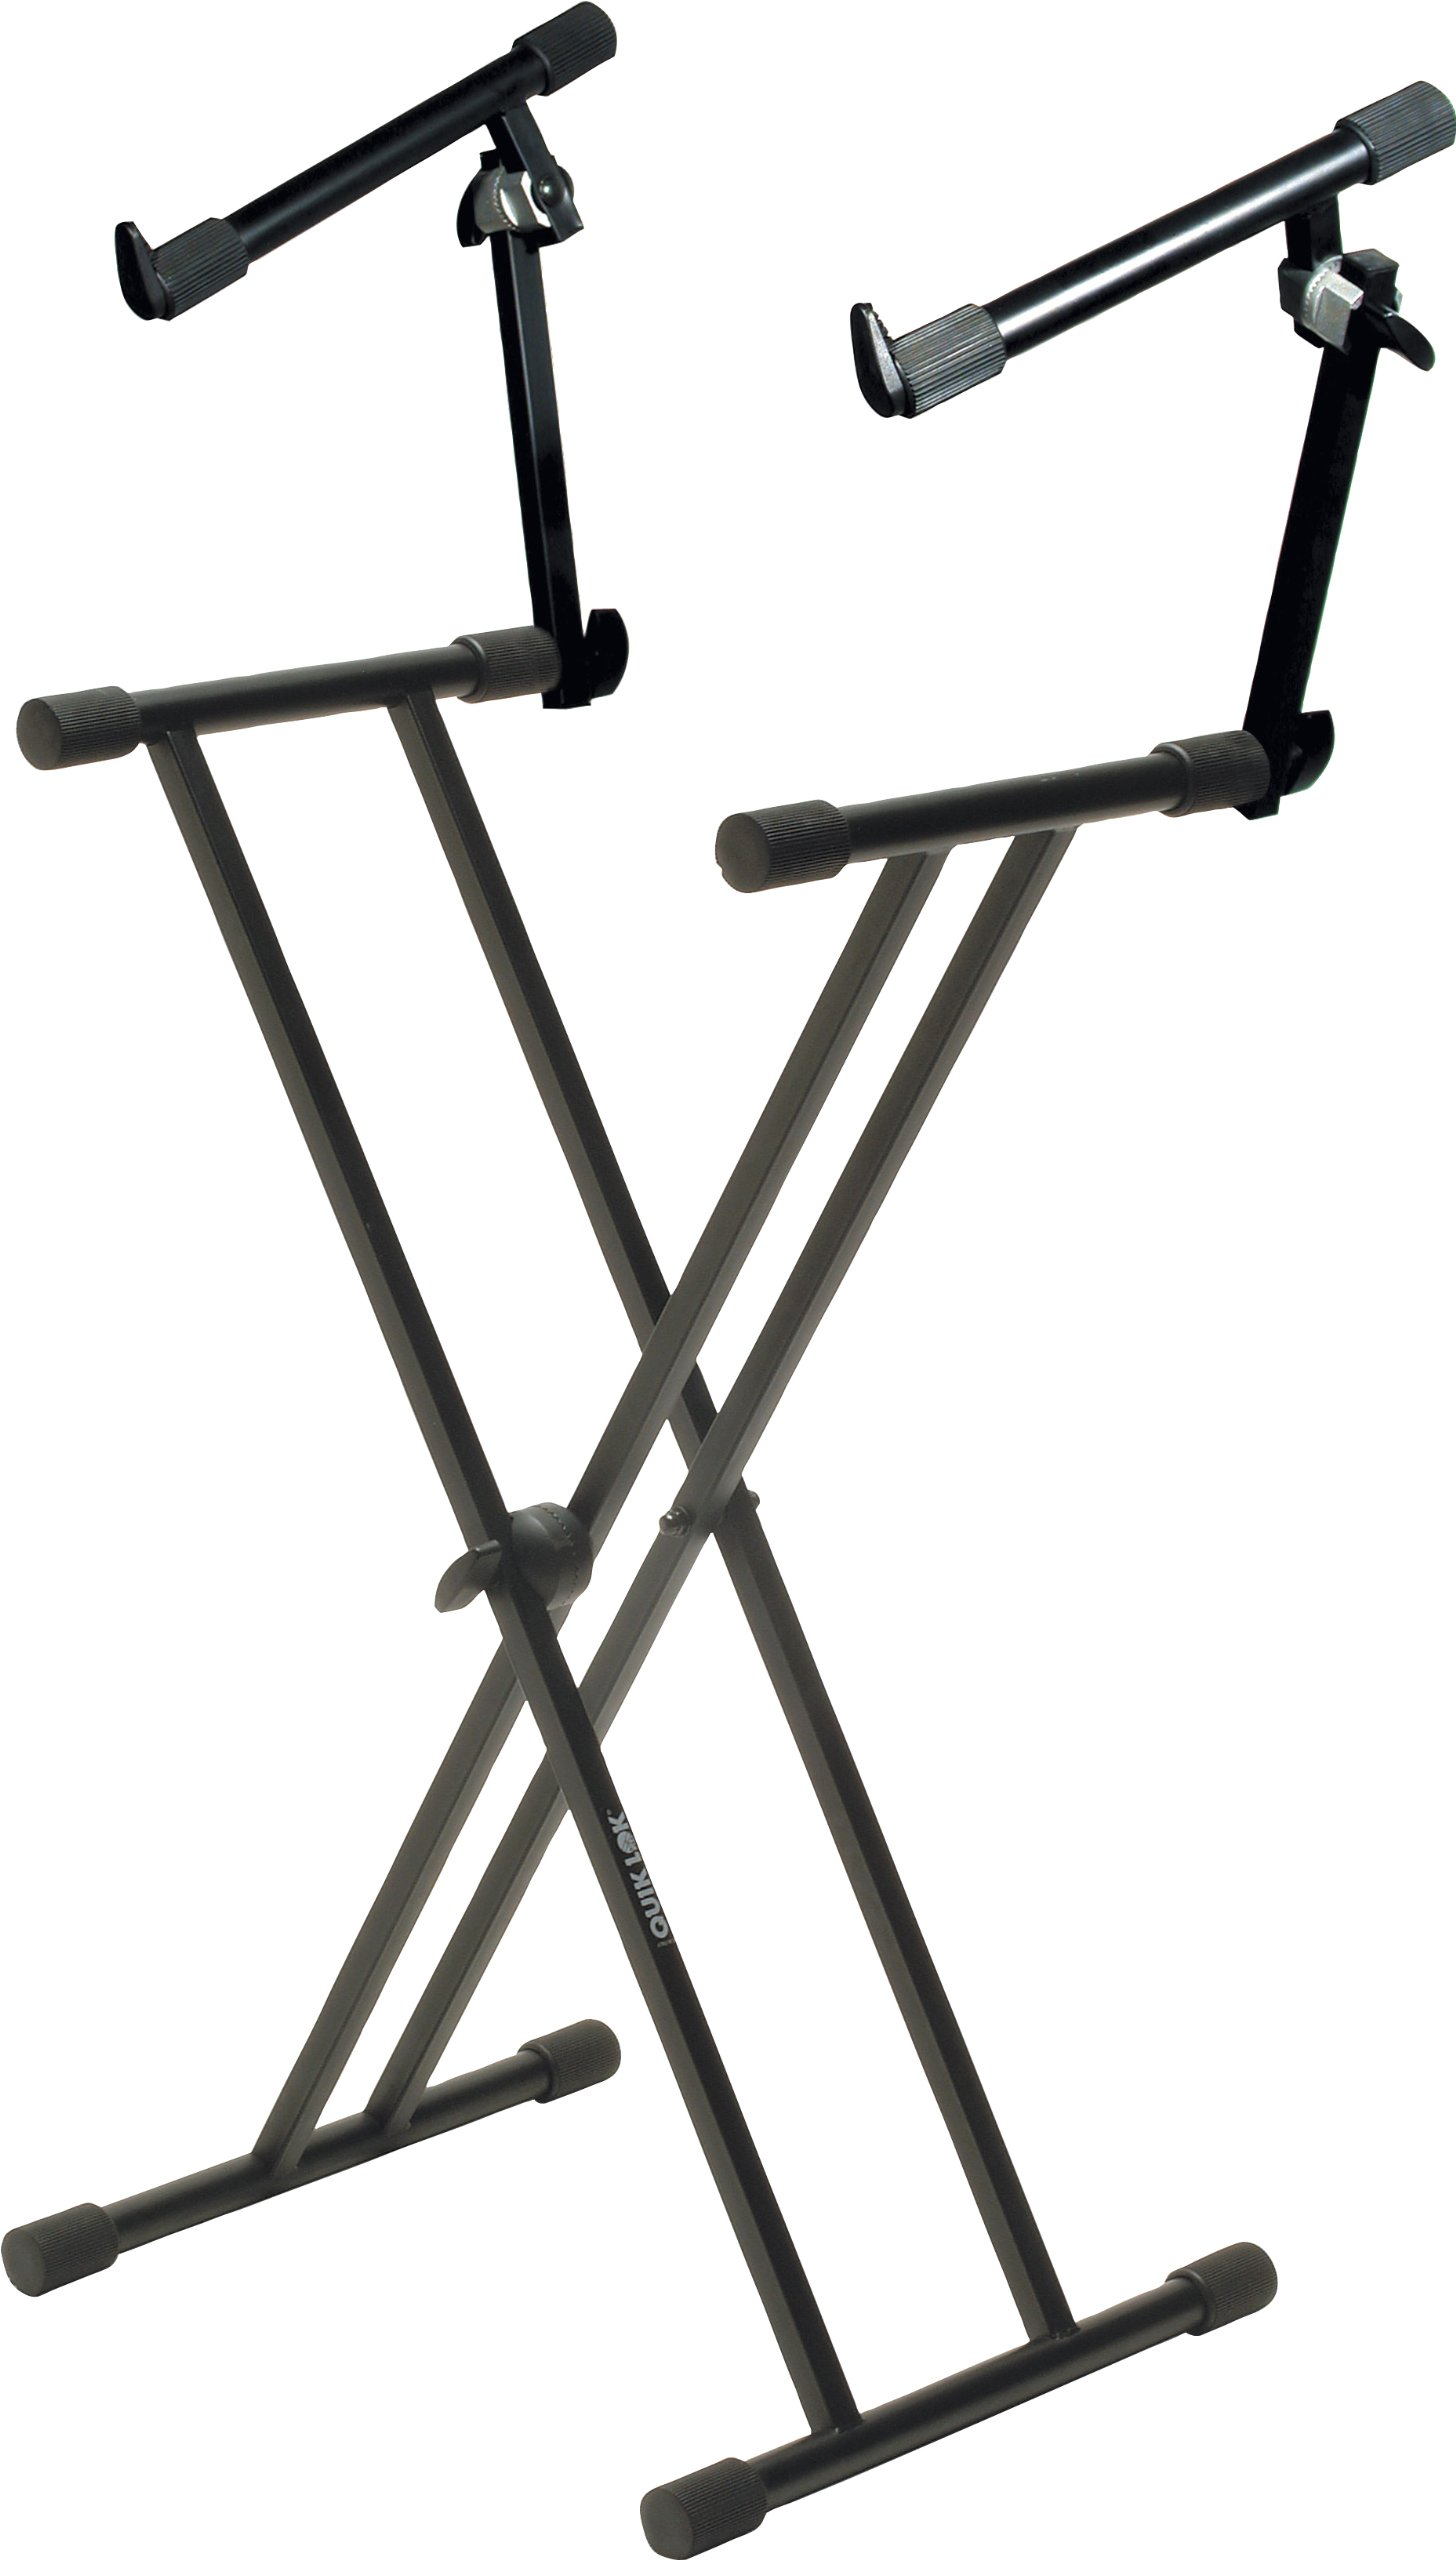 Quik Lok T-22 Keyboard stands and displays